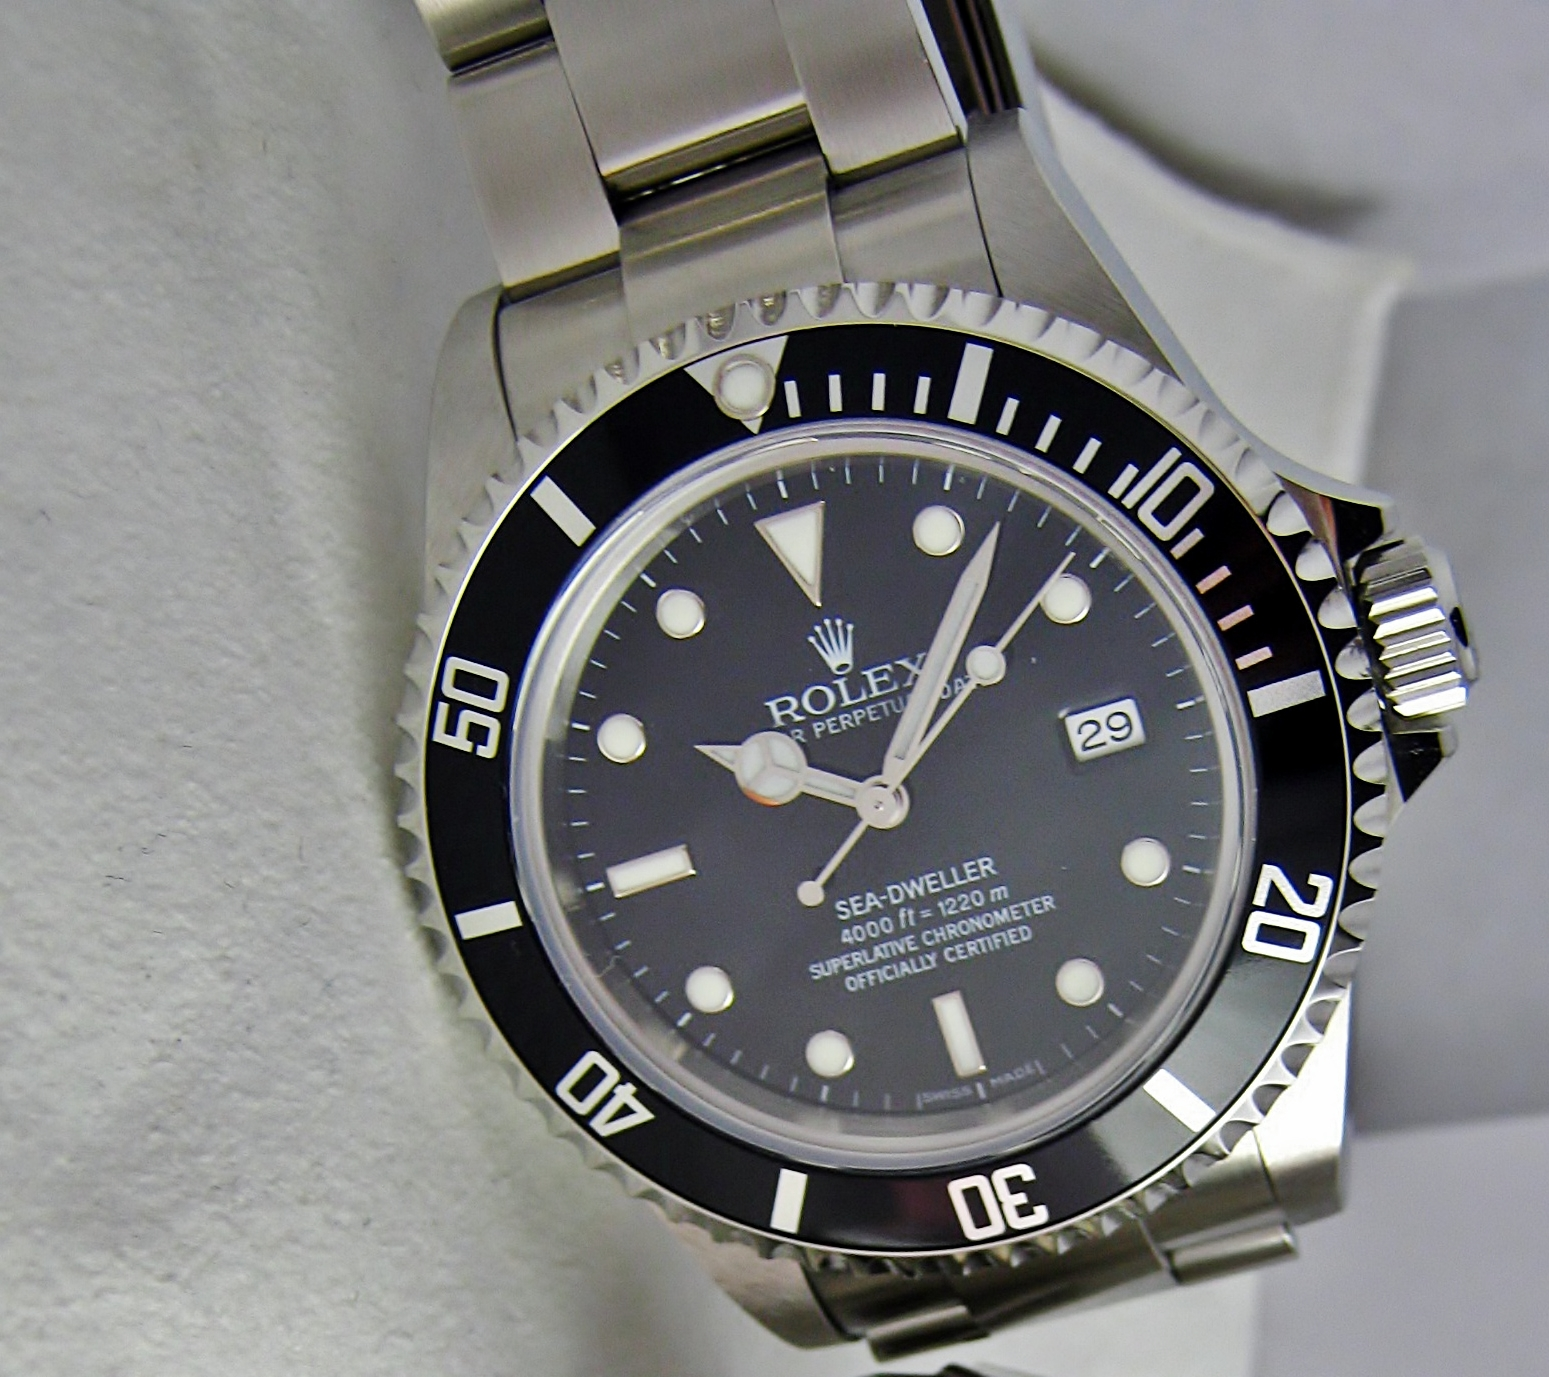 Rolex Sea Dweller 16600 Replica Rolex Sea-dweller 4000 With a